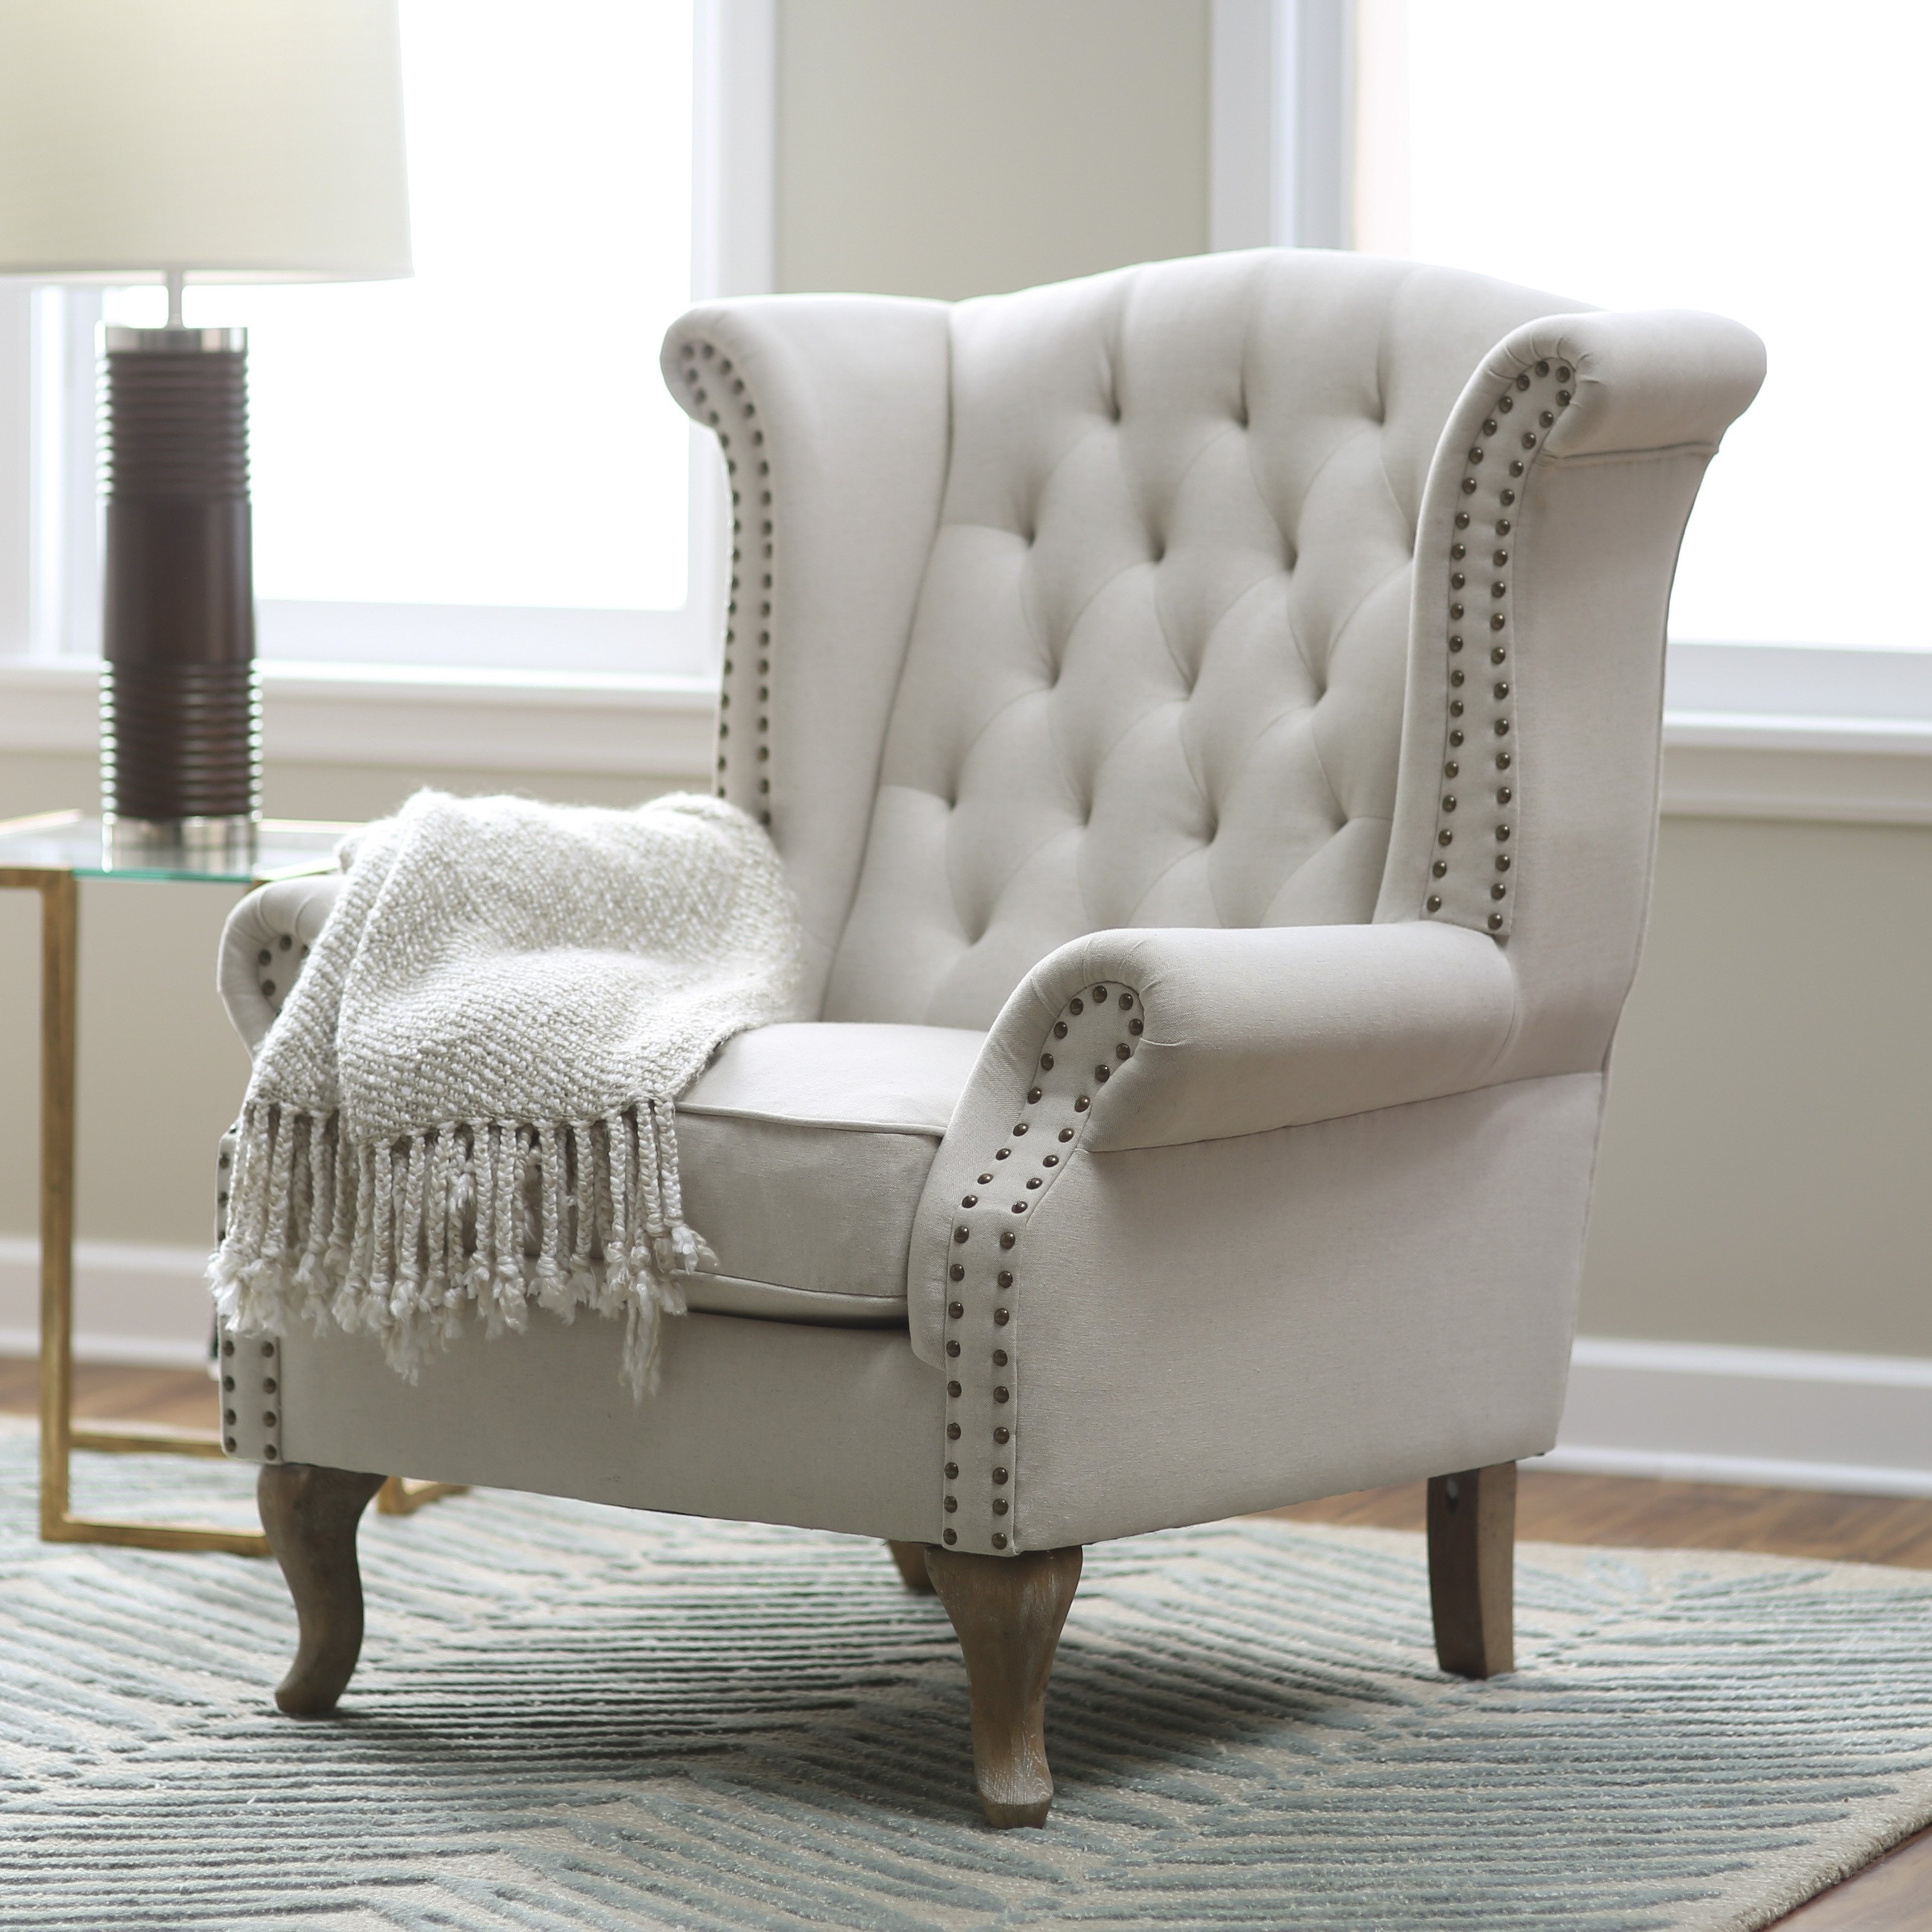 Office Accent Chairs Sea4001a Accent Chairs Furniture Safavieh within size 3200 X 3200